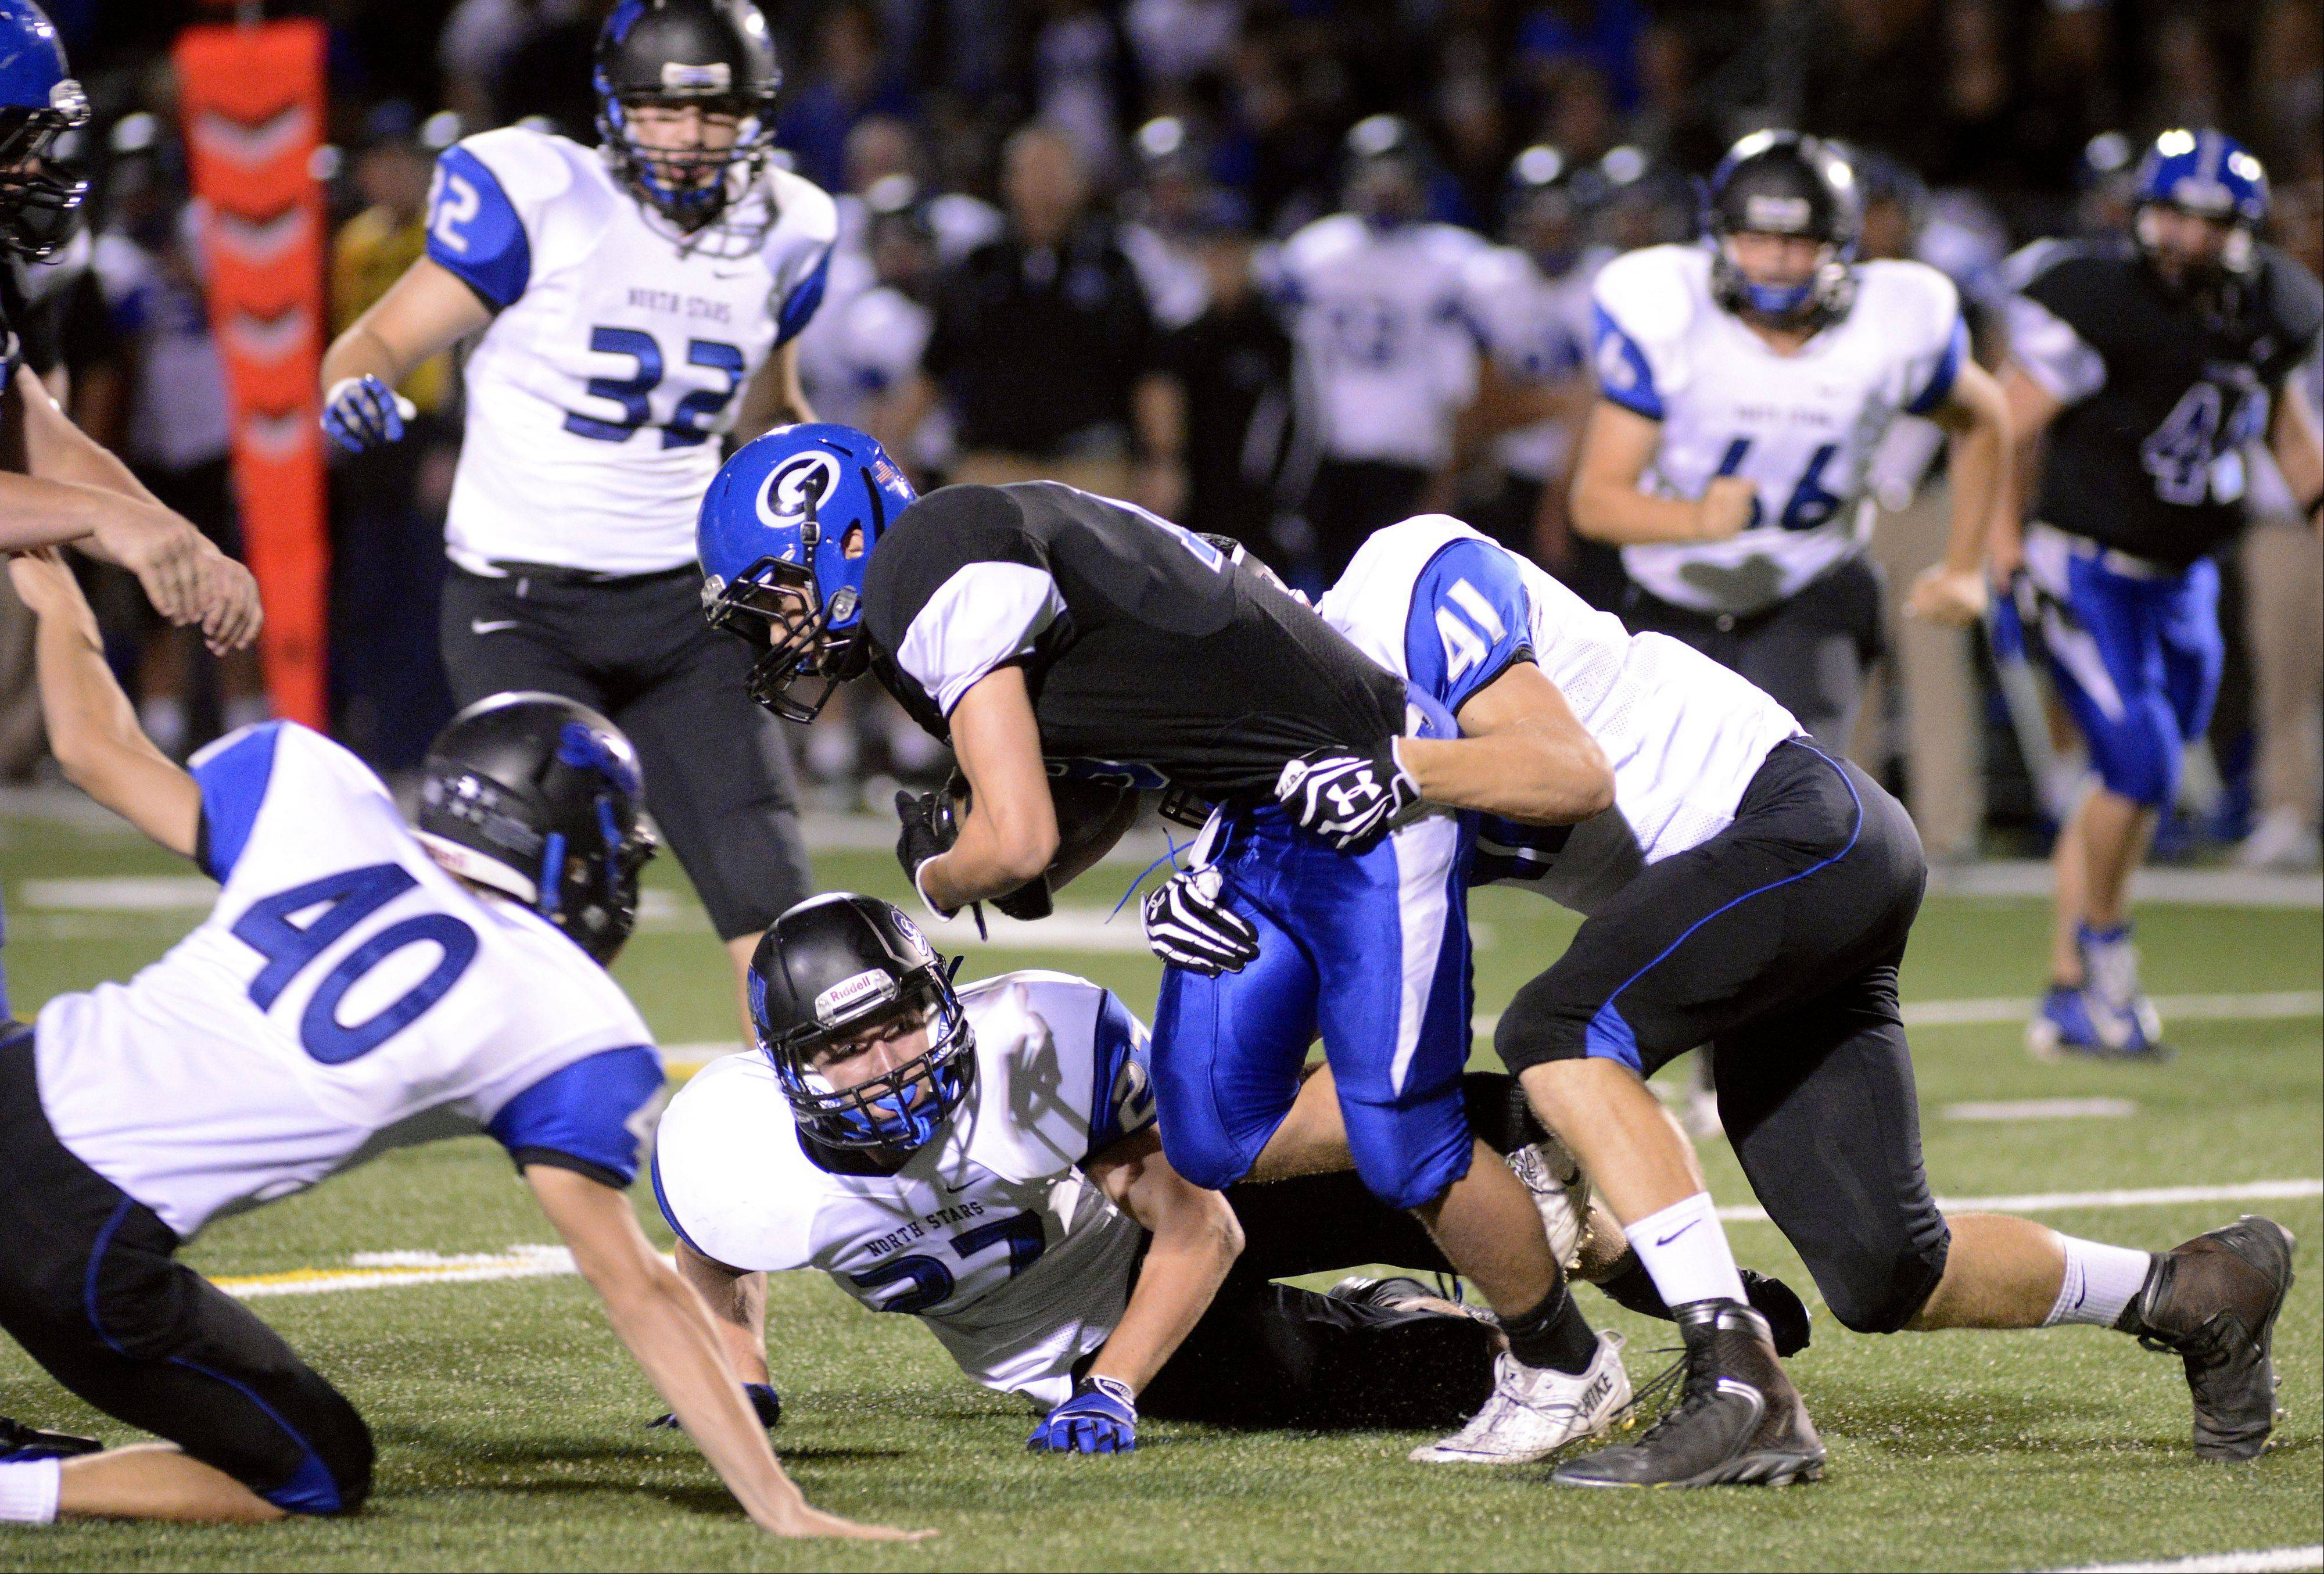 St. Charles North�s Jordan Bergren (41) takes down Geneva�s Chris Barger while teammates Nick Davison (40) and Mitchell Riggs (27) slide in to help in the first quarter on Friday.